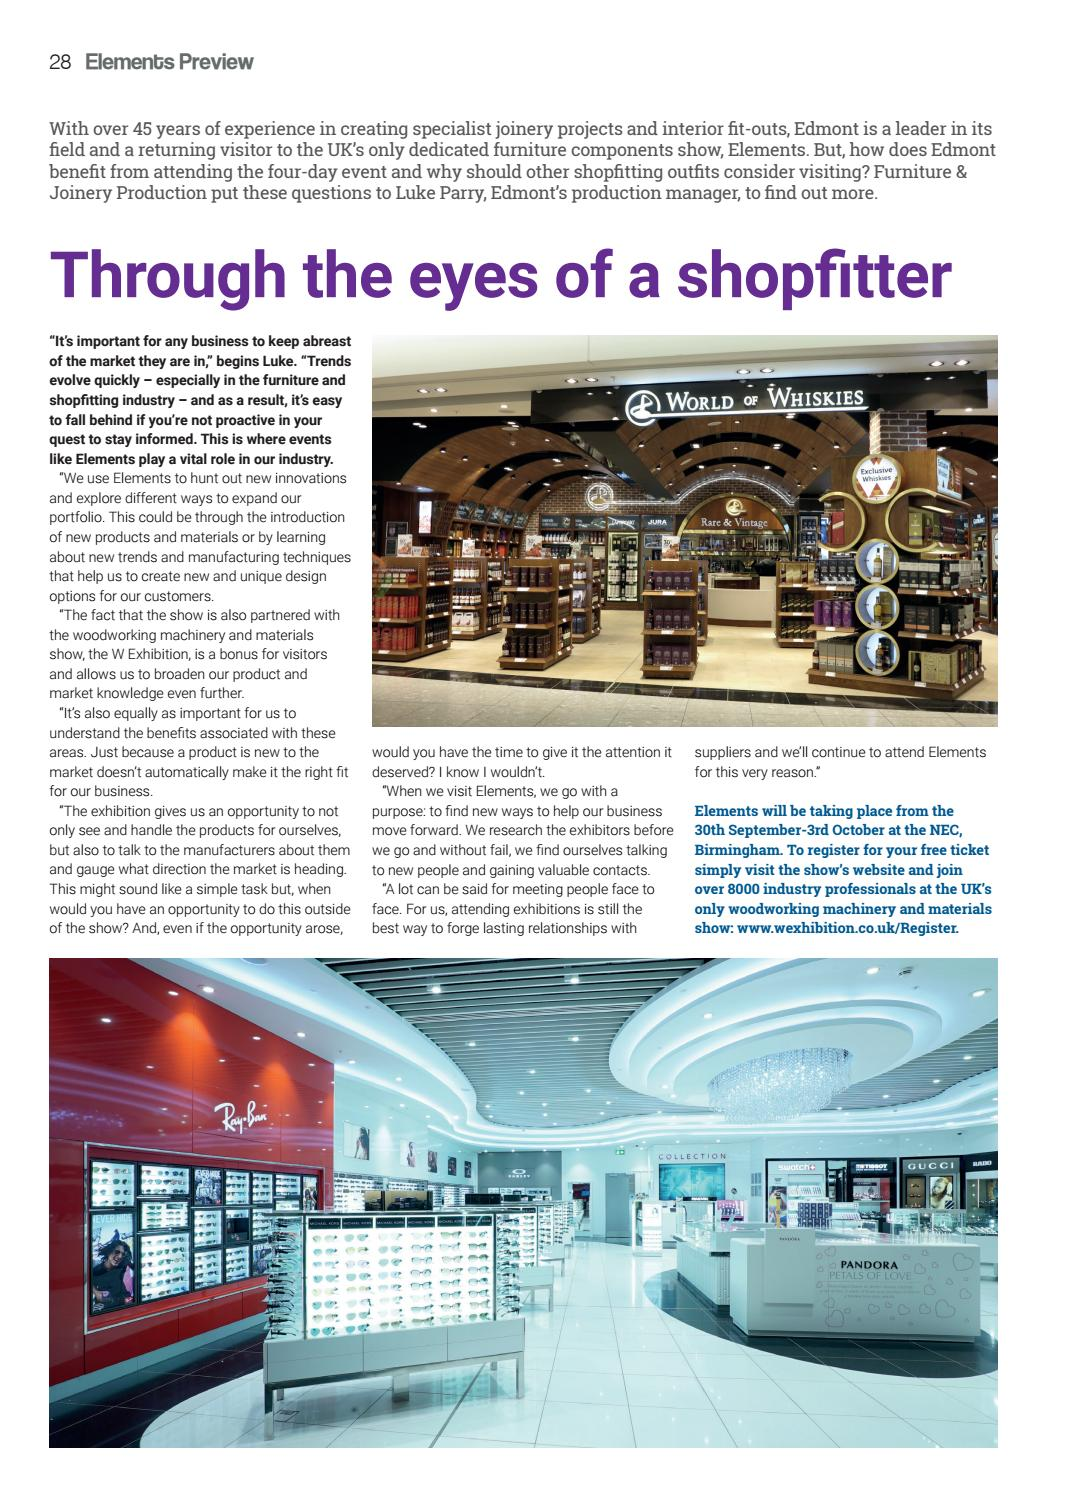 Furniture Joinery Production 299 By Gearing Media Group Ltd Issuu